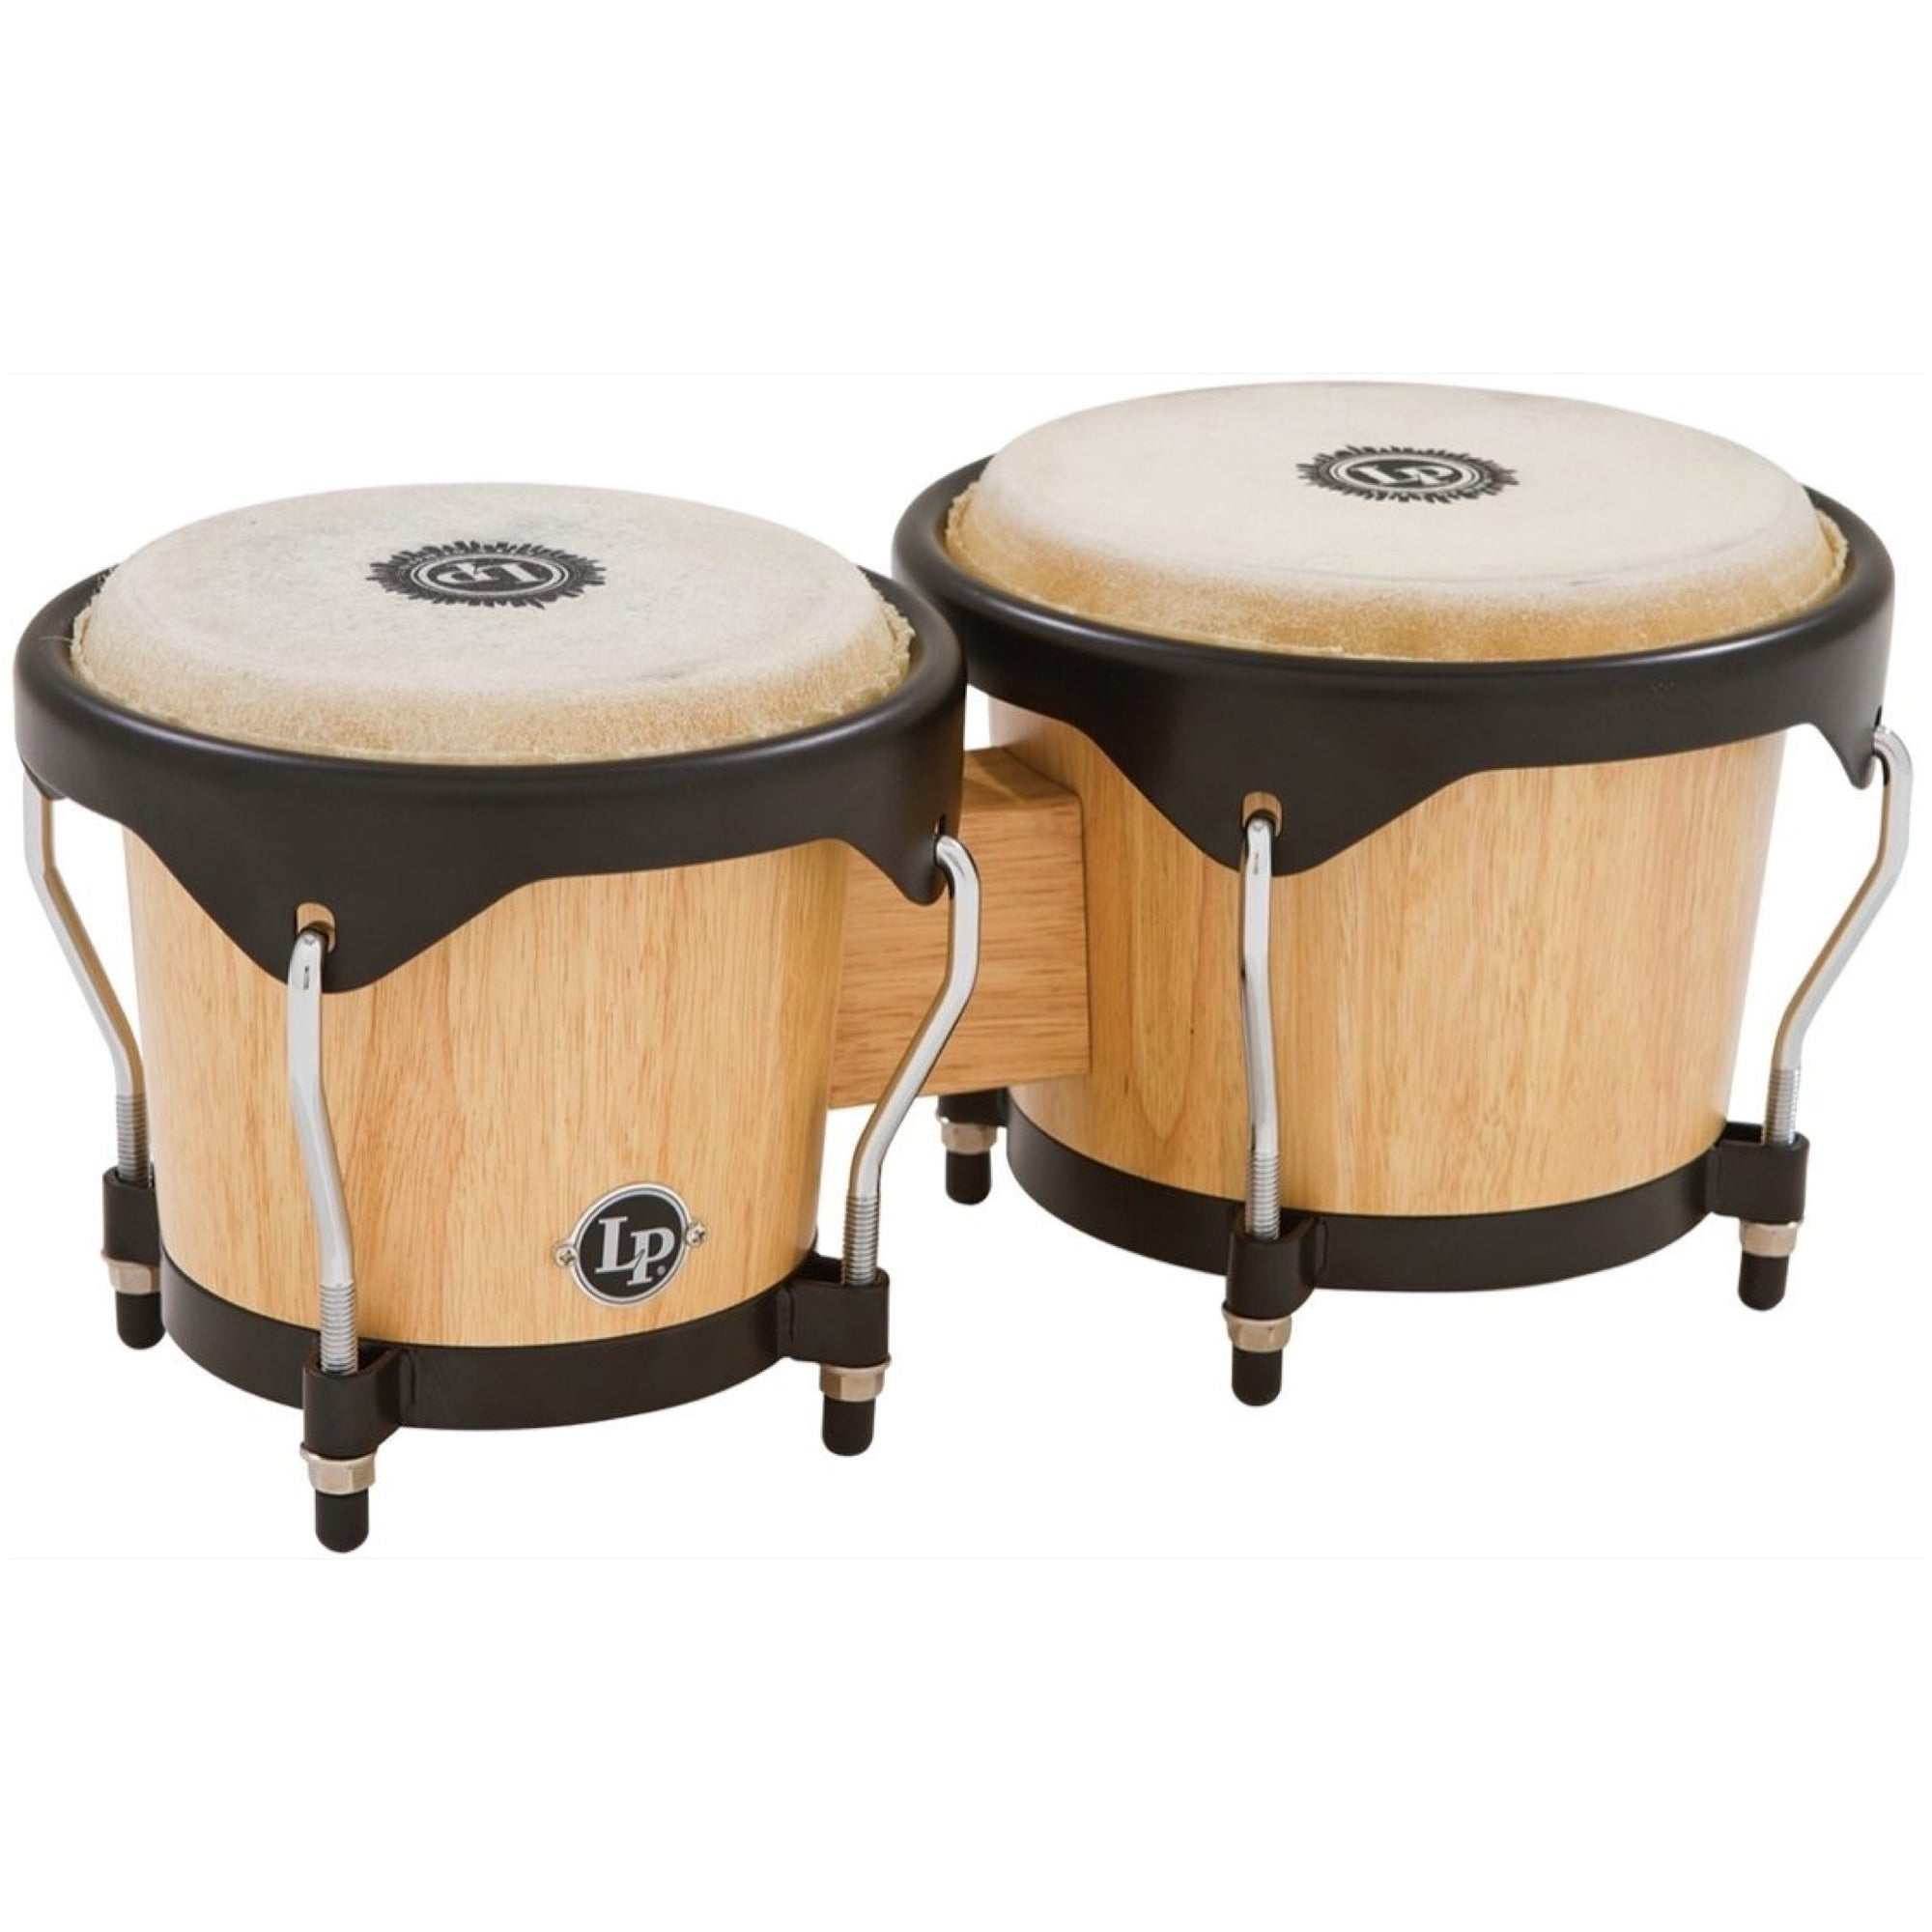 Latin Percussion 601 City Series Bongos, Natural